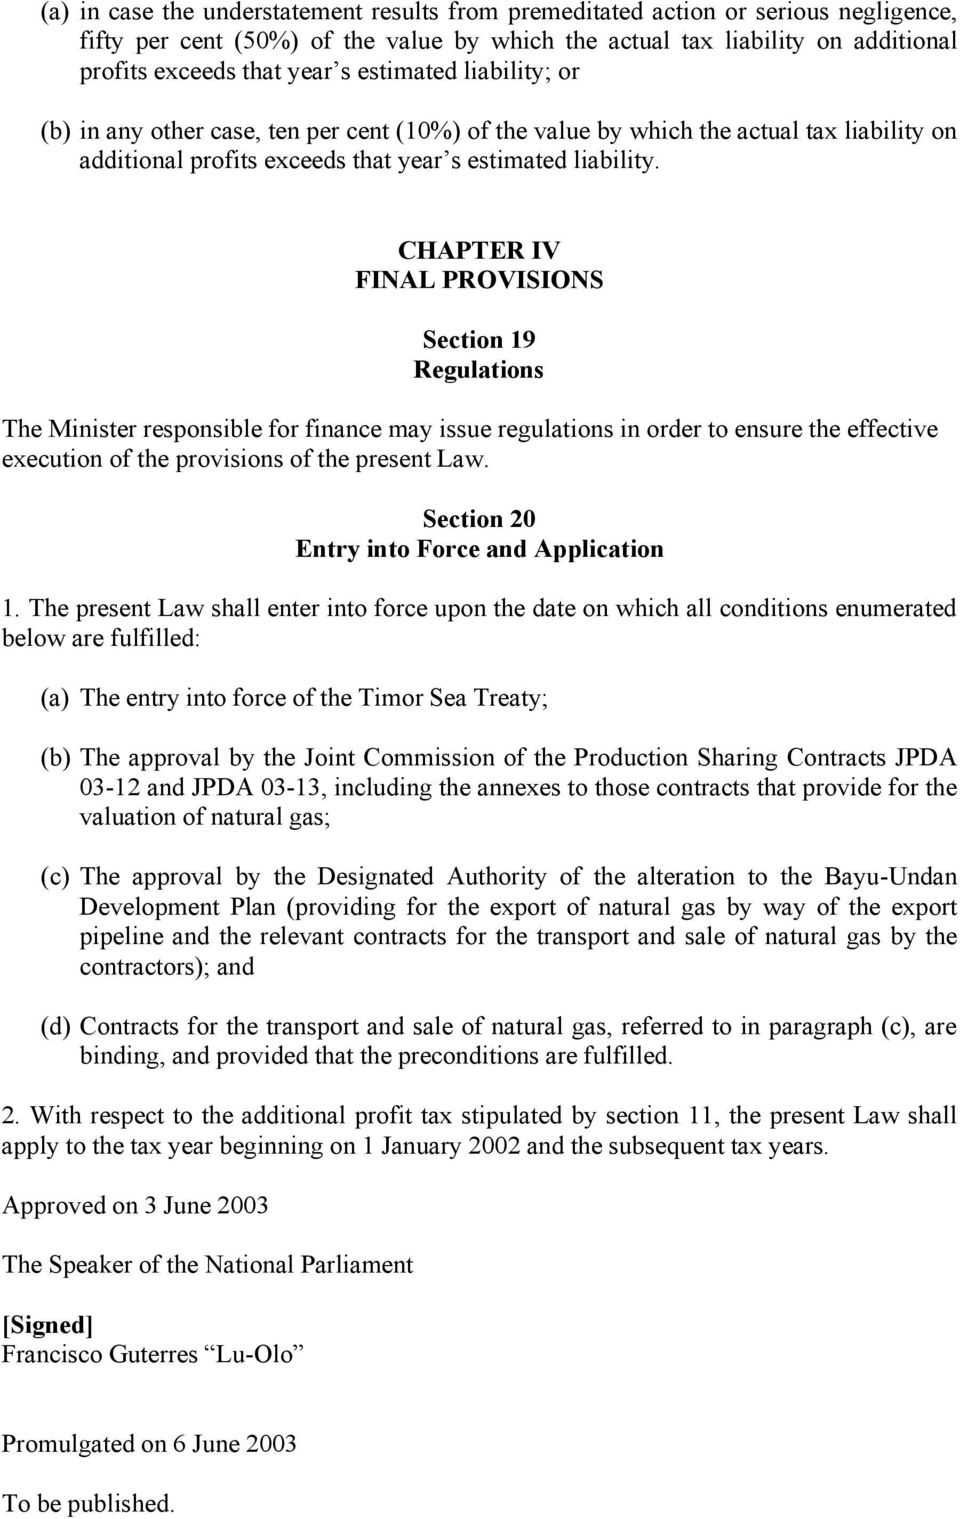 CHAPTER IV FINAL PROVISIONS Section 19 Regulations The Minister responsible for finance may issue regulations in order to ensure the effective execution of the provisions of the present Law.